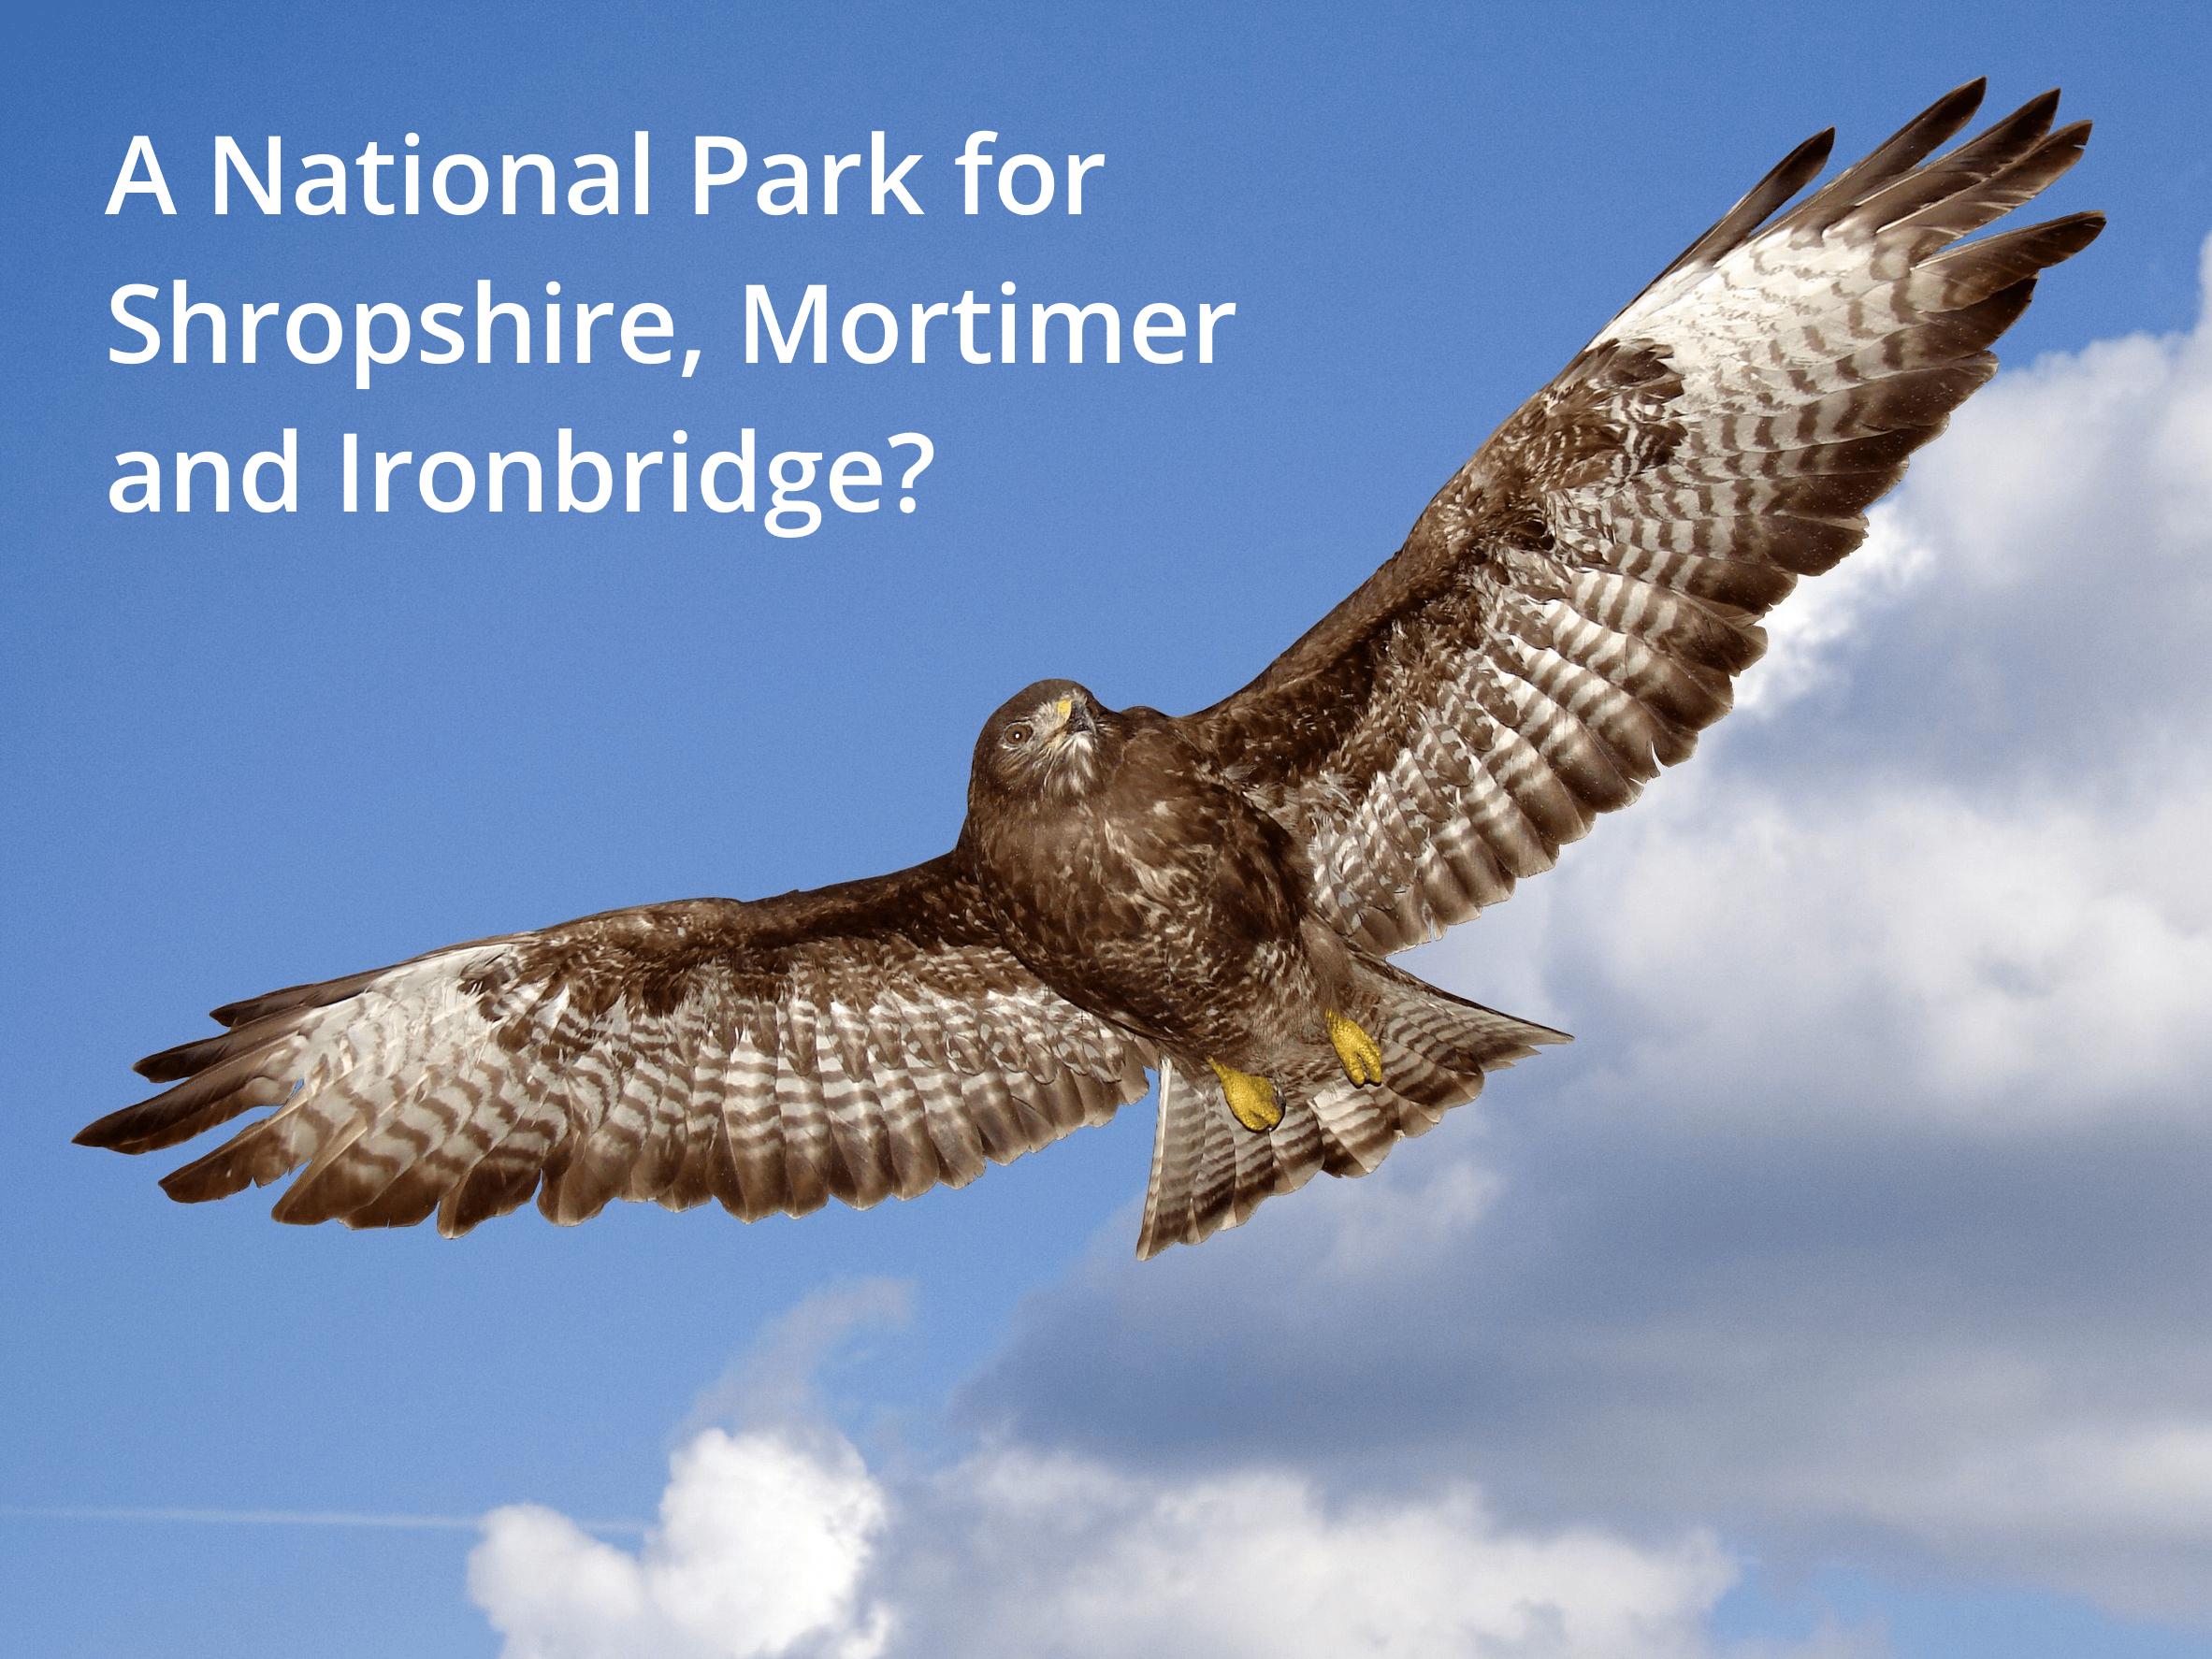 Join us in Ludlow for the national park debate tomorrow, Thursday 29 November